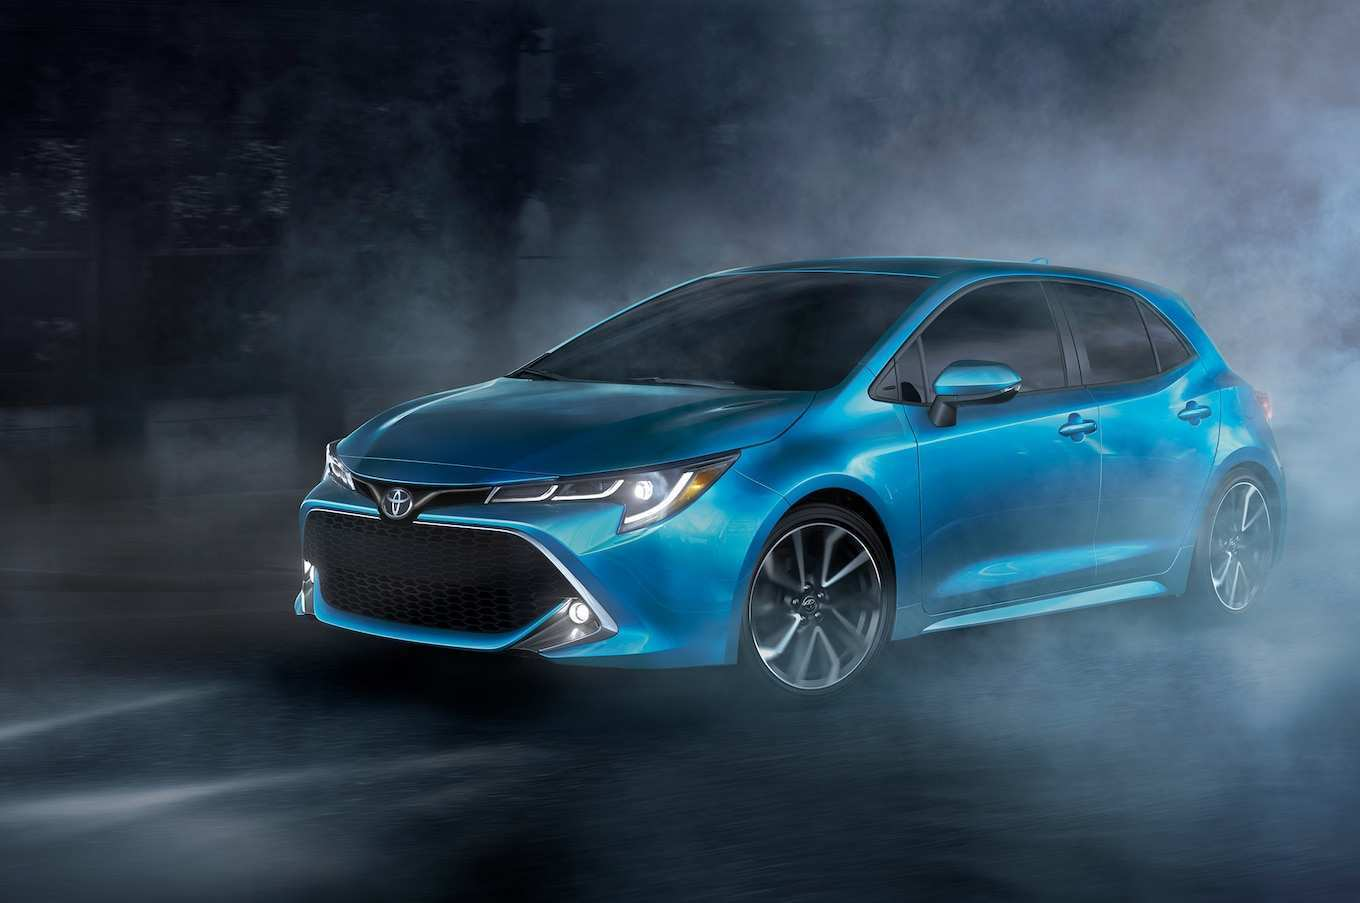 79 All New The Toyota 2019 En Mexico Specs And Review Specs by The Toyota 2019 En Mexico Specs And Review